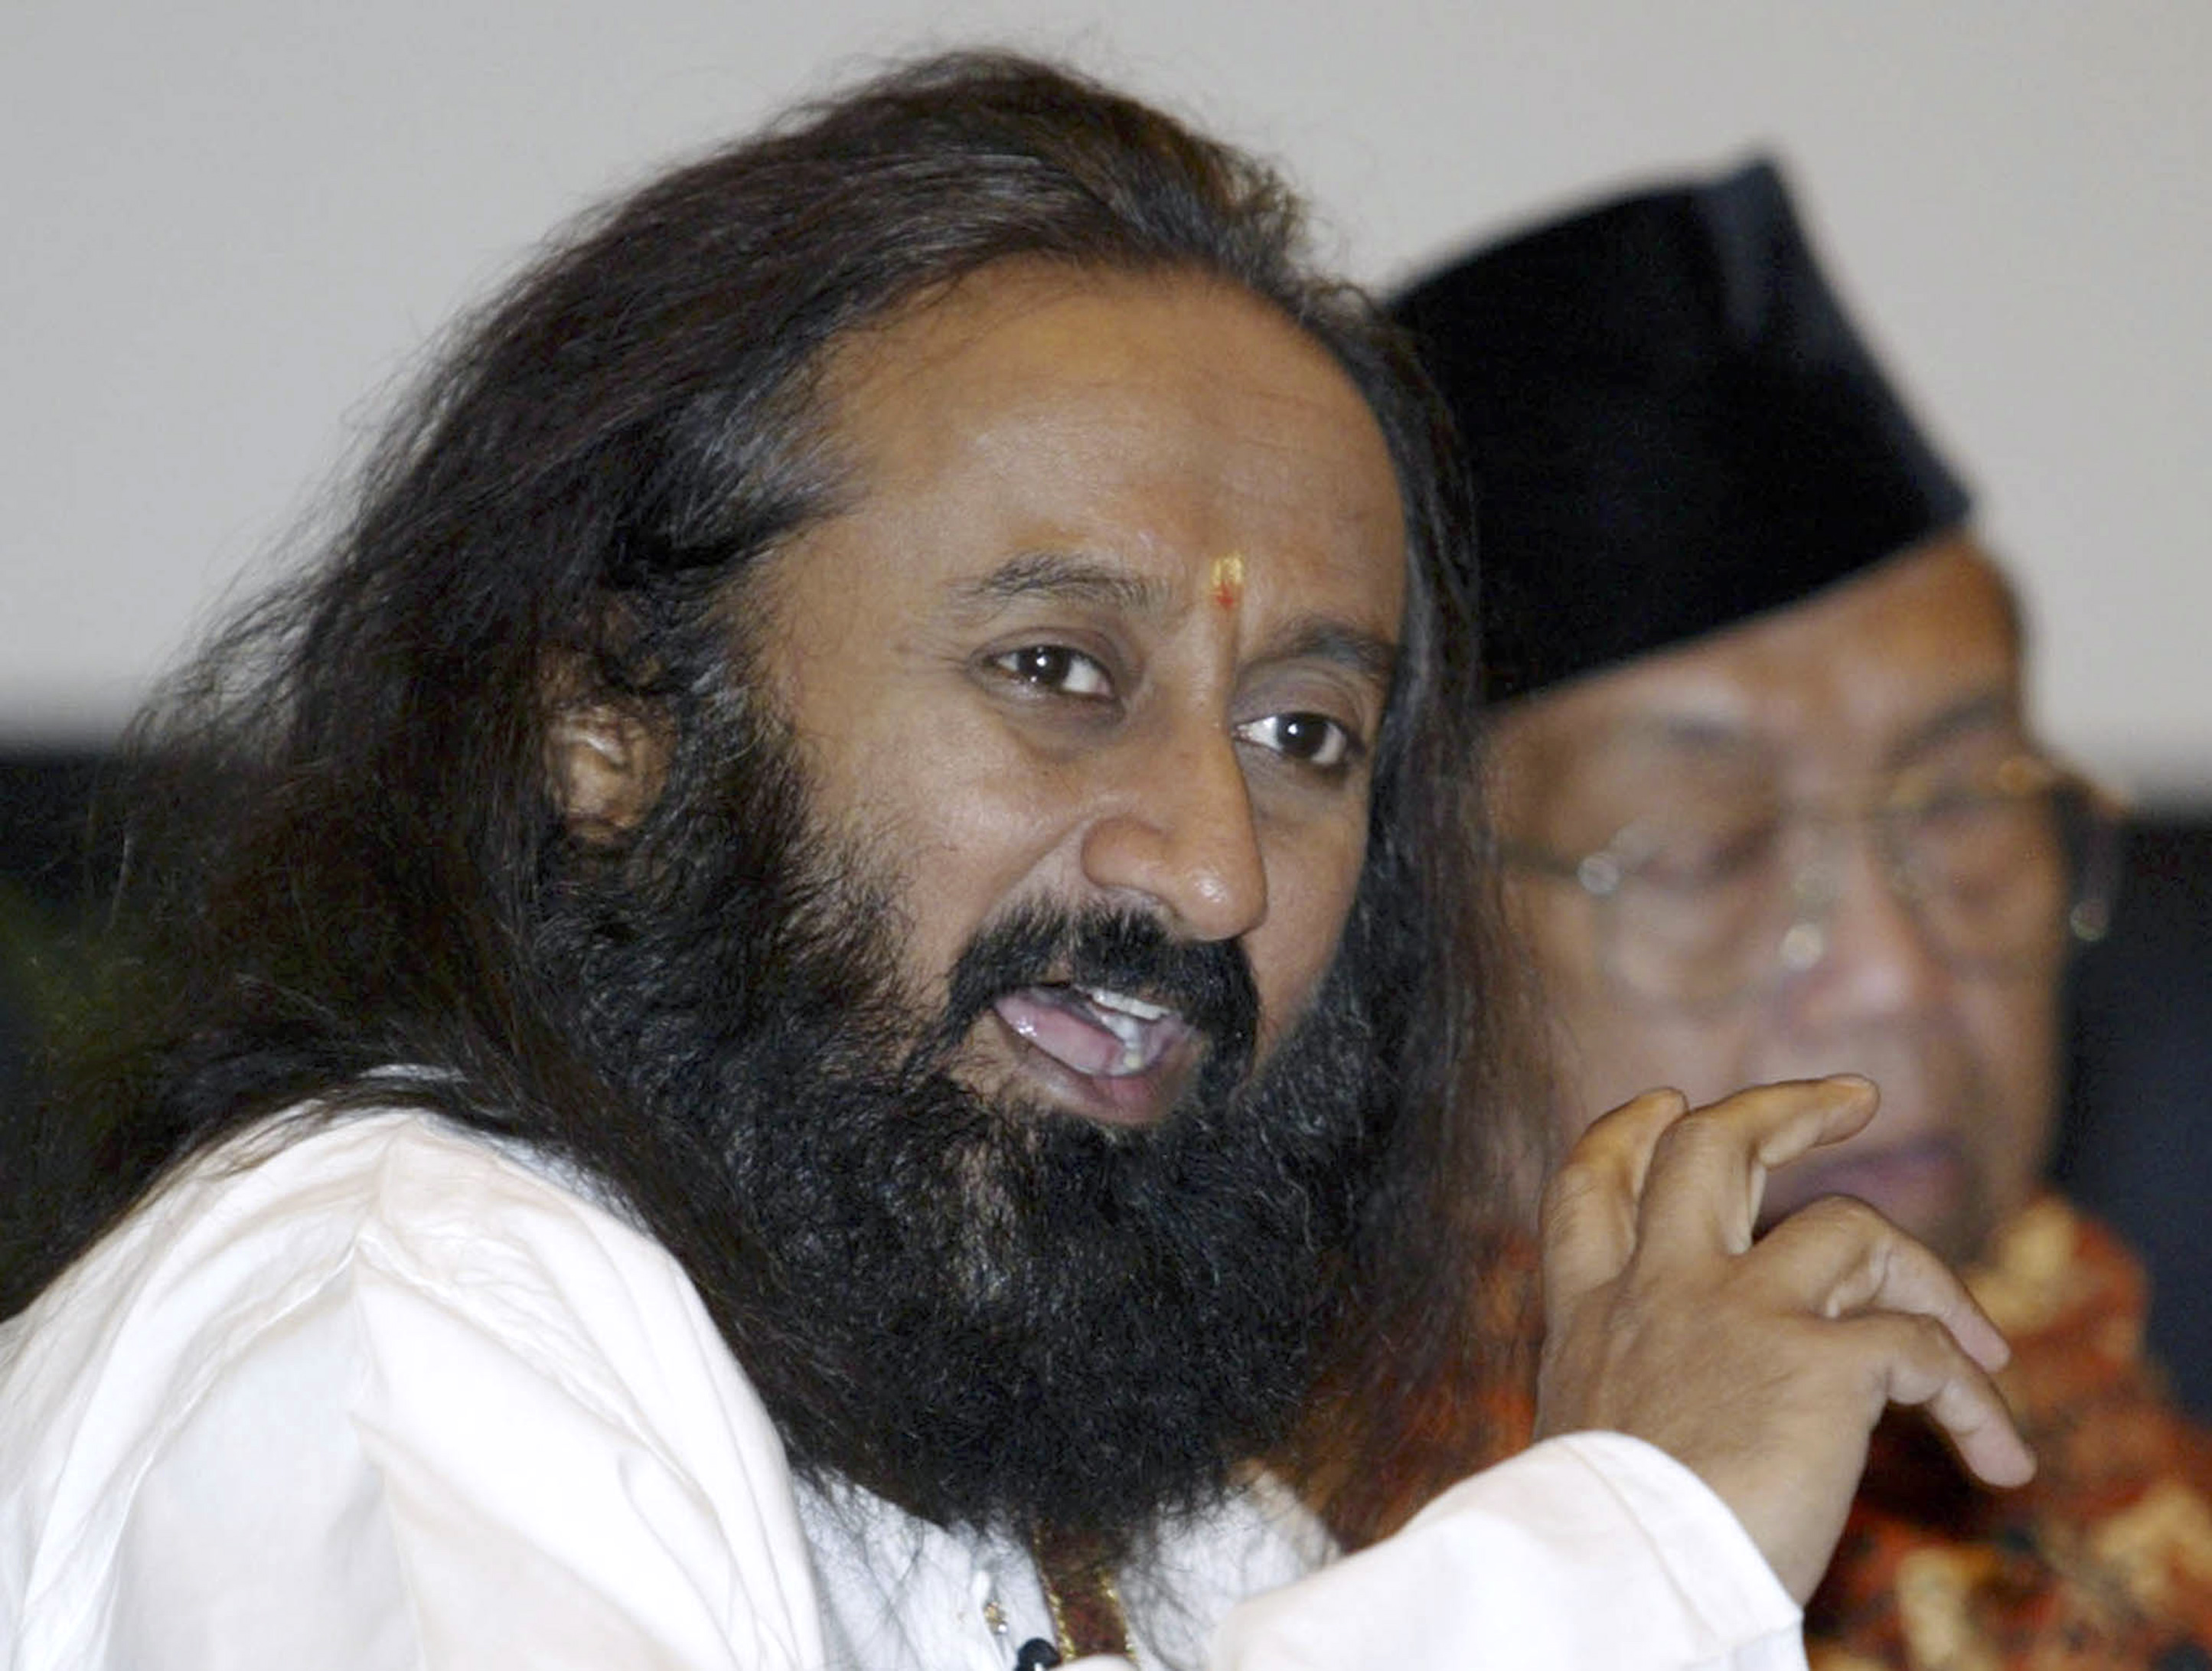 A Hindu leader Sri Sri Ravi Shankar (L) from India speaks next to former Indonesian president Abdurrahman Wahid during a meeting of religious leaders in Jimbaran, Bali, June 12, 2007.The meeting is partly aimed at countering an Iranian-backed conference last year that questioned the existence of the Holocaust. REUTERS/Murdani Usman  (INDONESIA) - RTR1QPSS